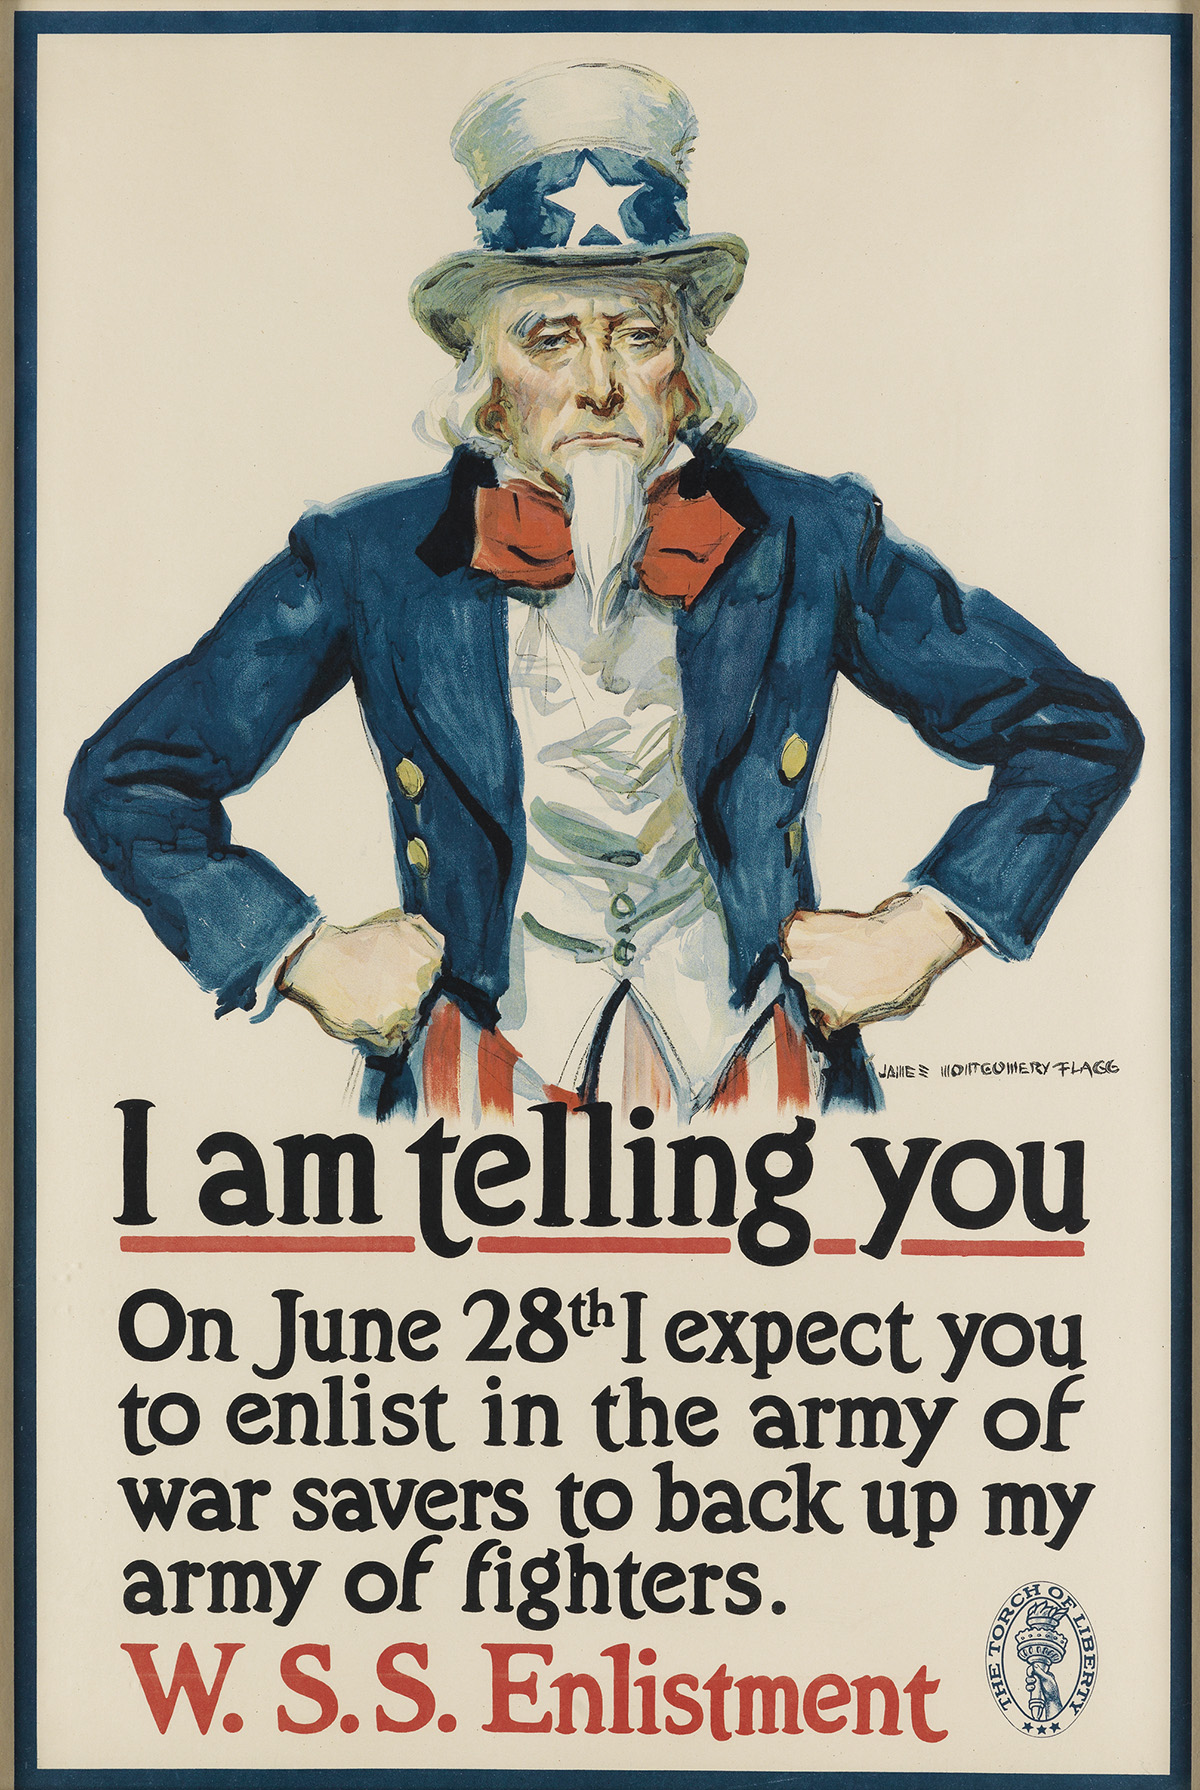 JAMES-MONTGOMERY-FLAGG-(1870-1960)-I-AM-TELLING-YOU-1918-29x